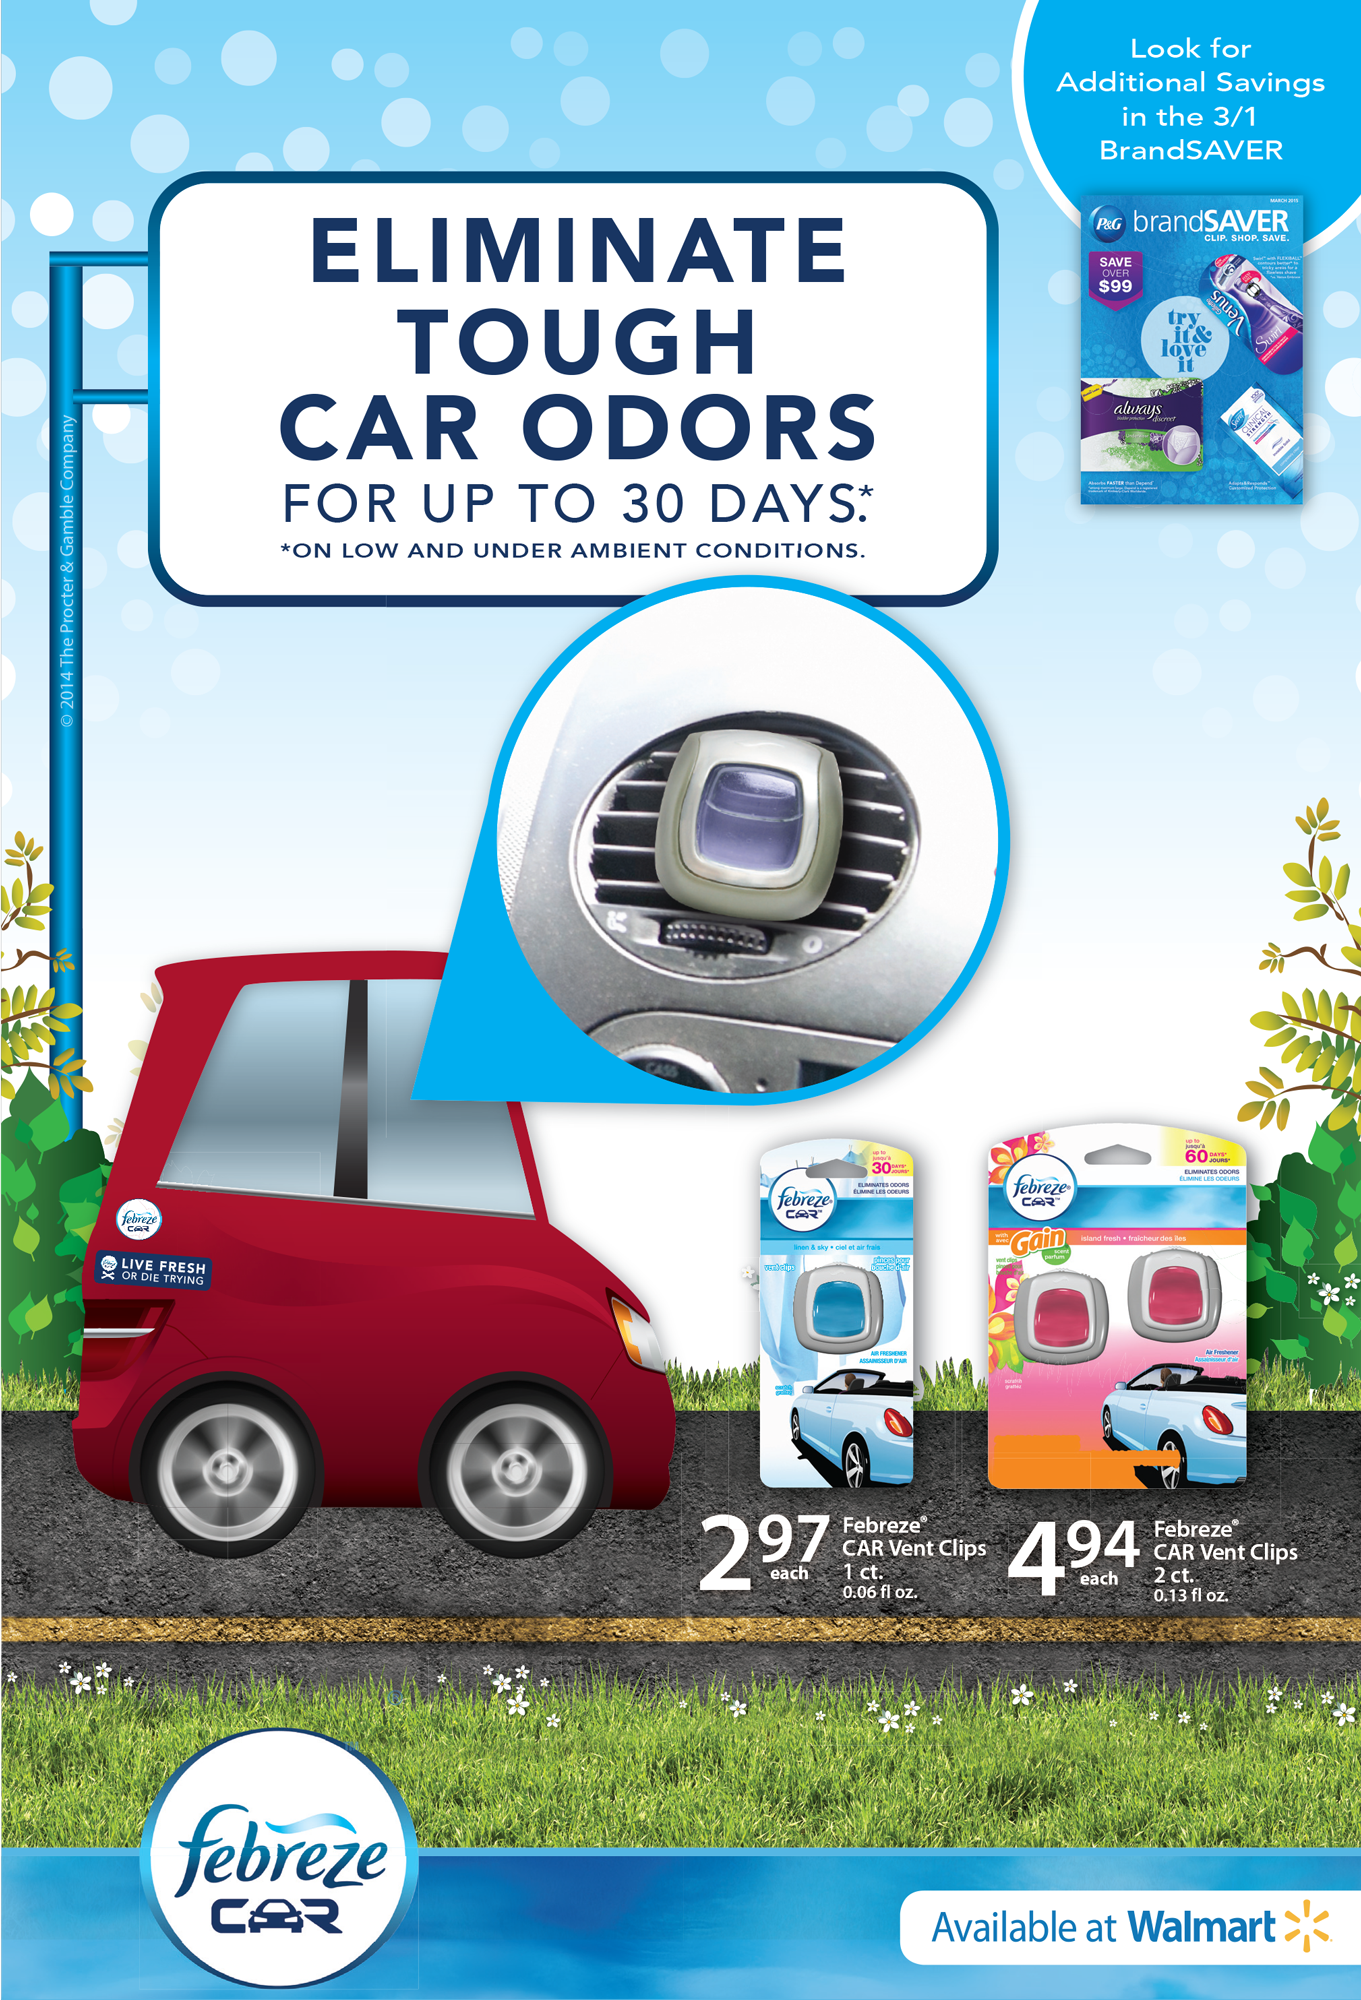 febreze car clips and 25 walmart giveaway febreze car vent clips 25 walmart gift card giveaway